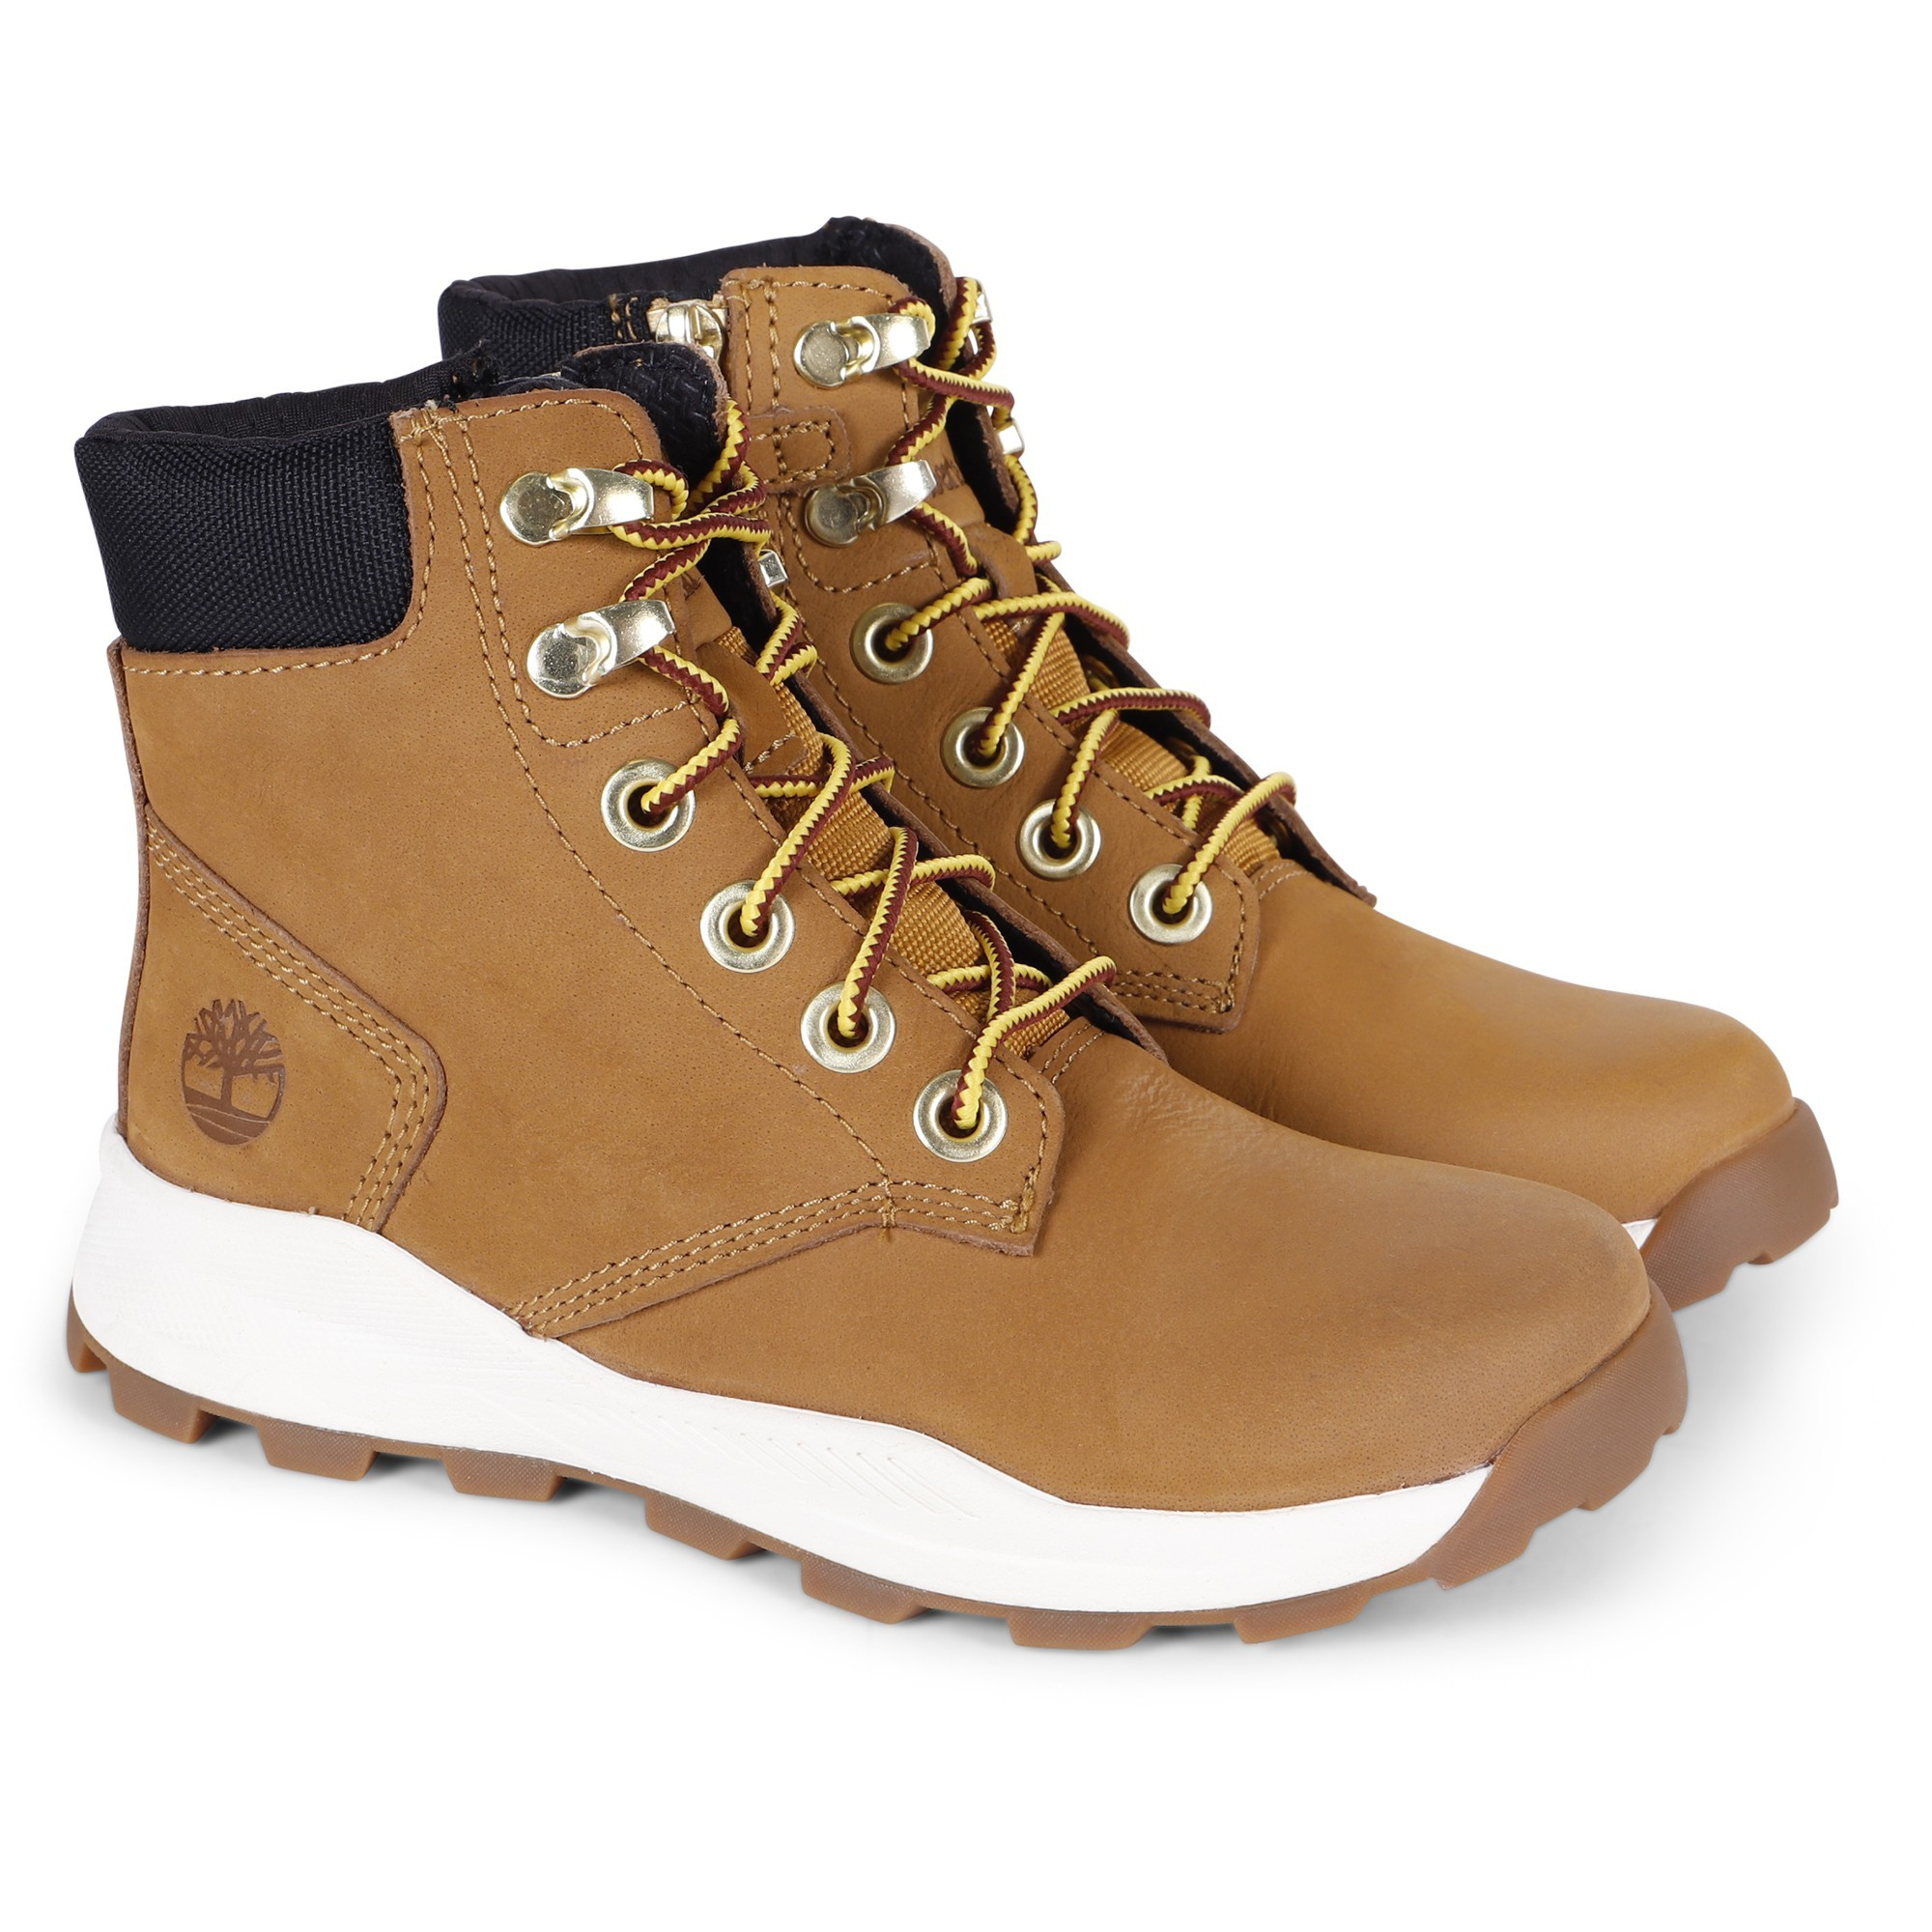 Timberland Boys Sneaker Boots in Brown